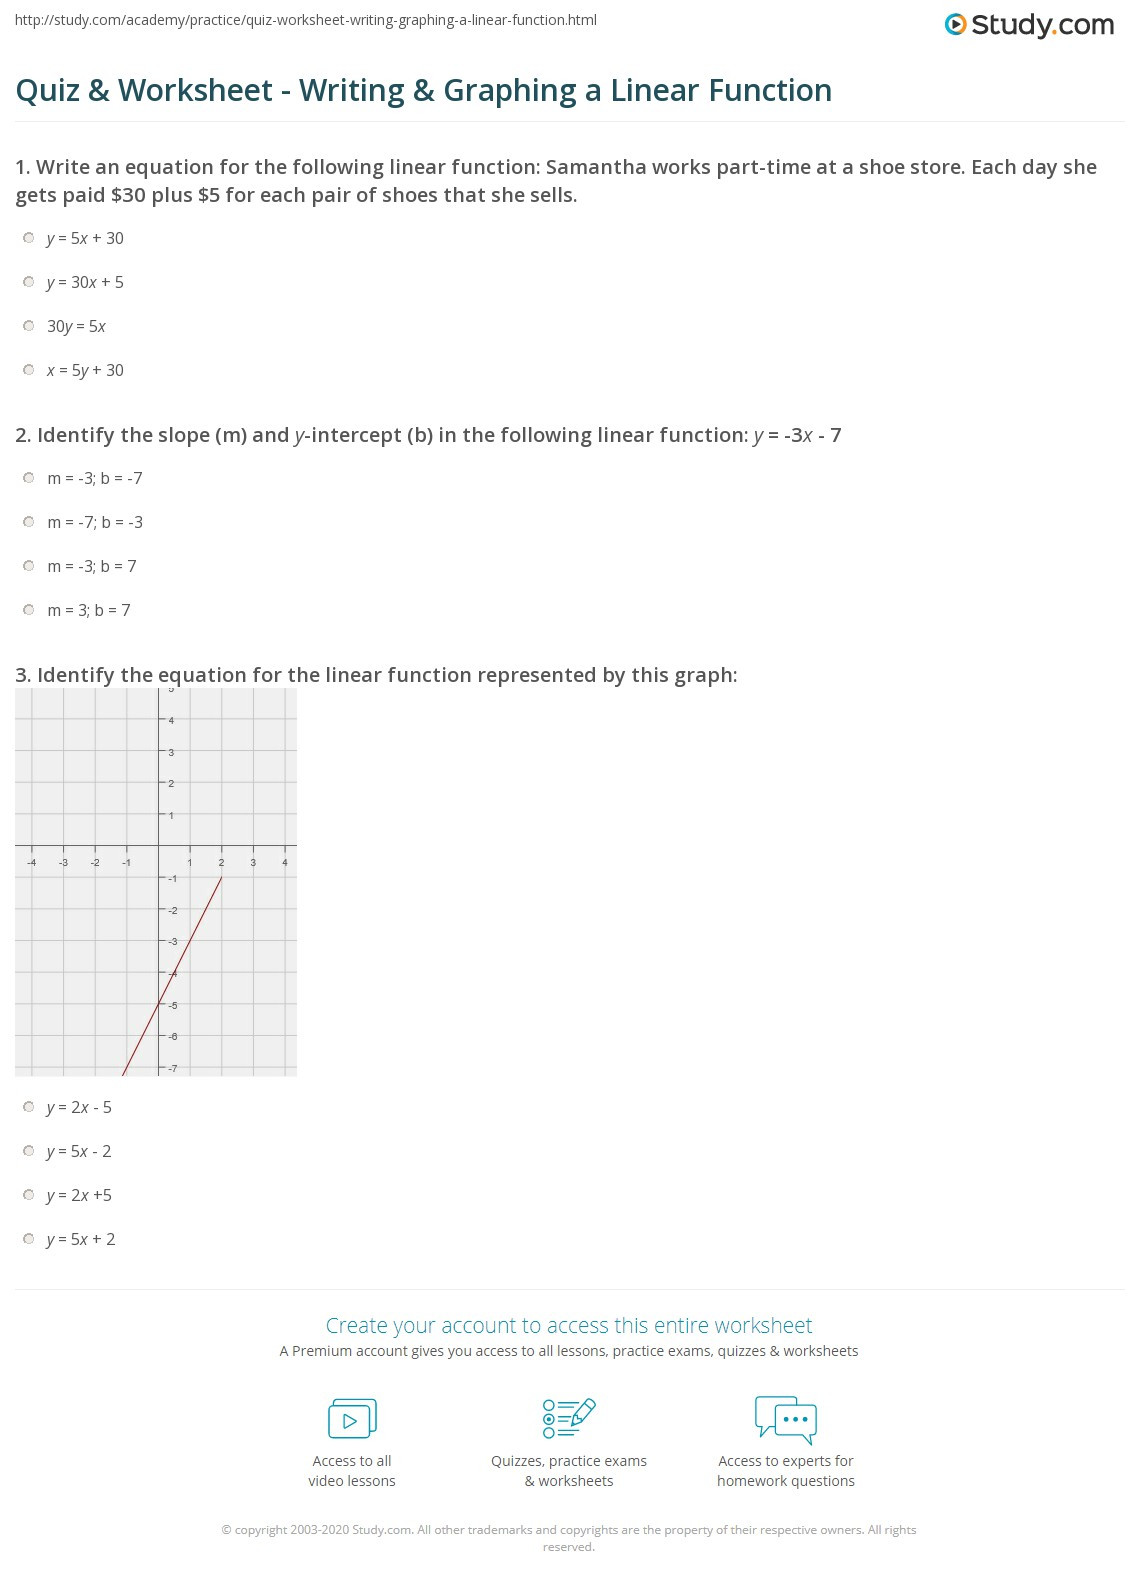 Writing and Graphing Inequalities Worksheet Quiz & Worksheet Writing & Graphing A Linear Function